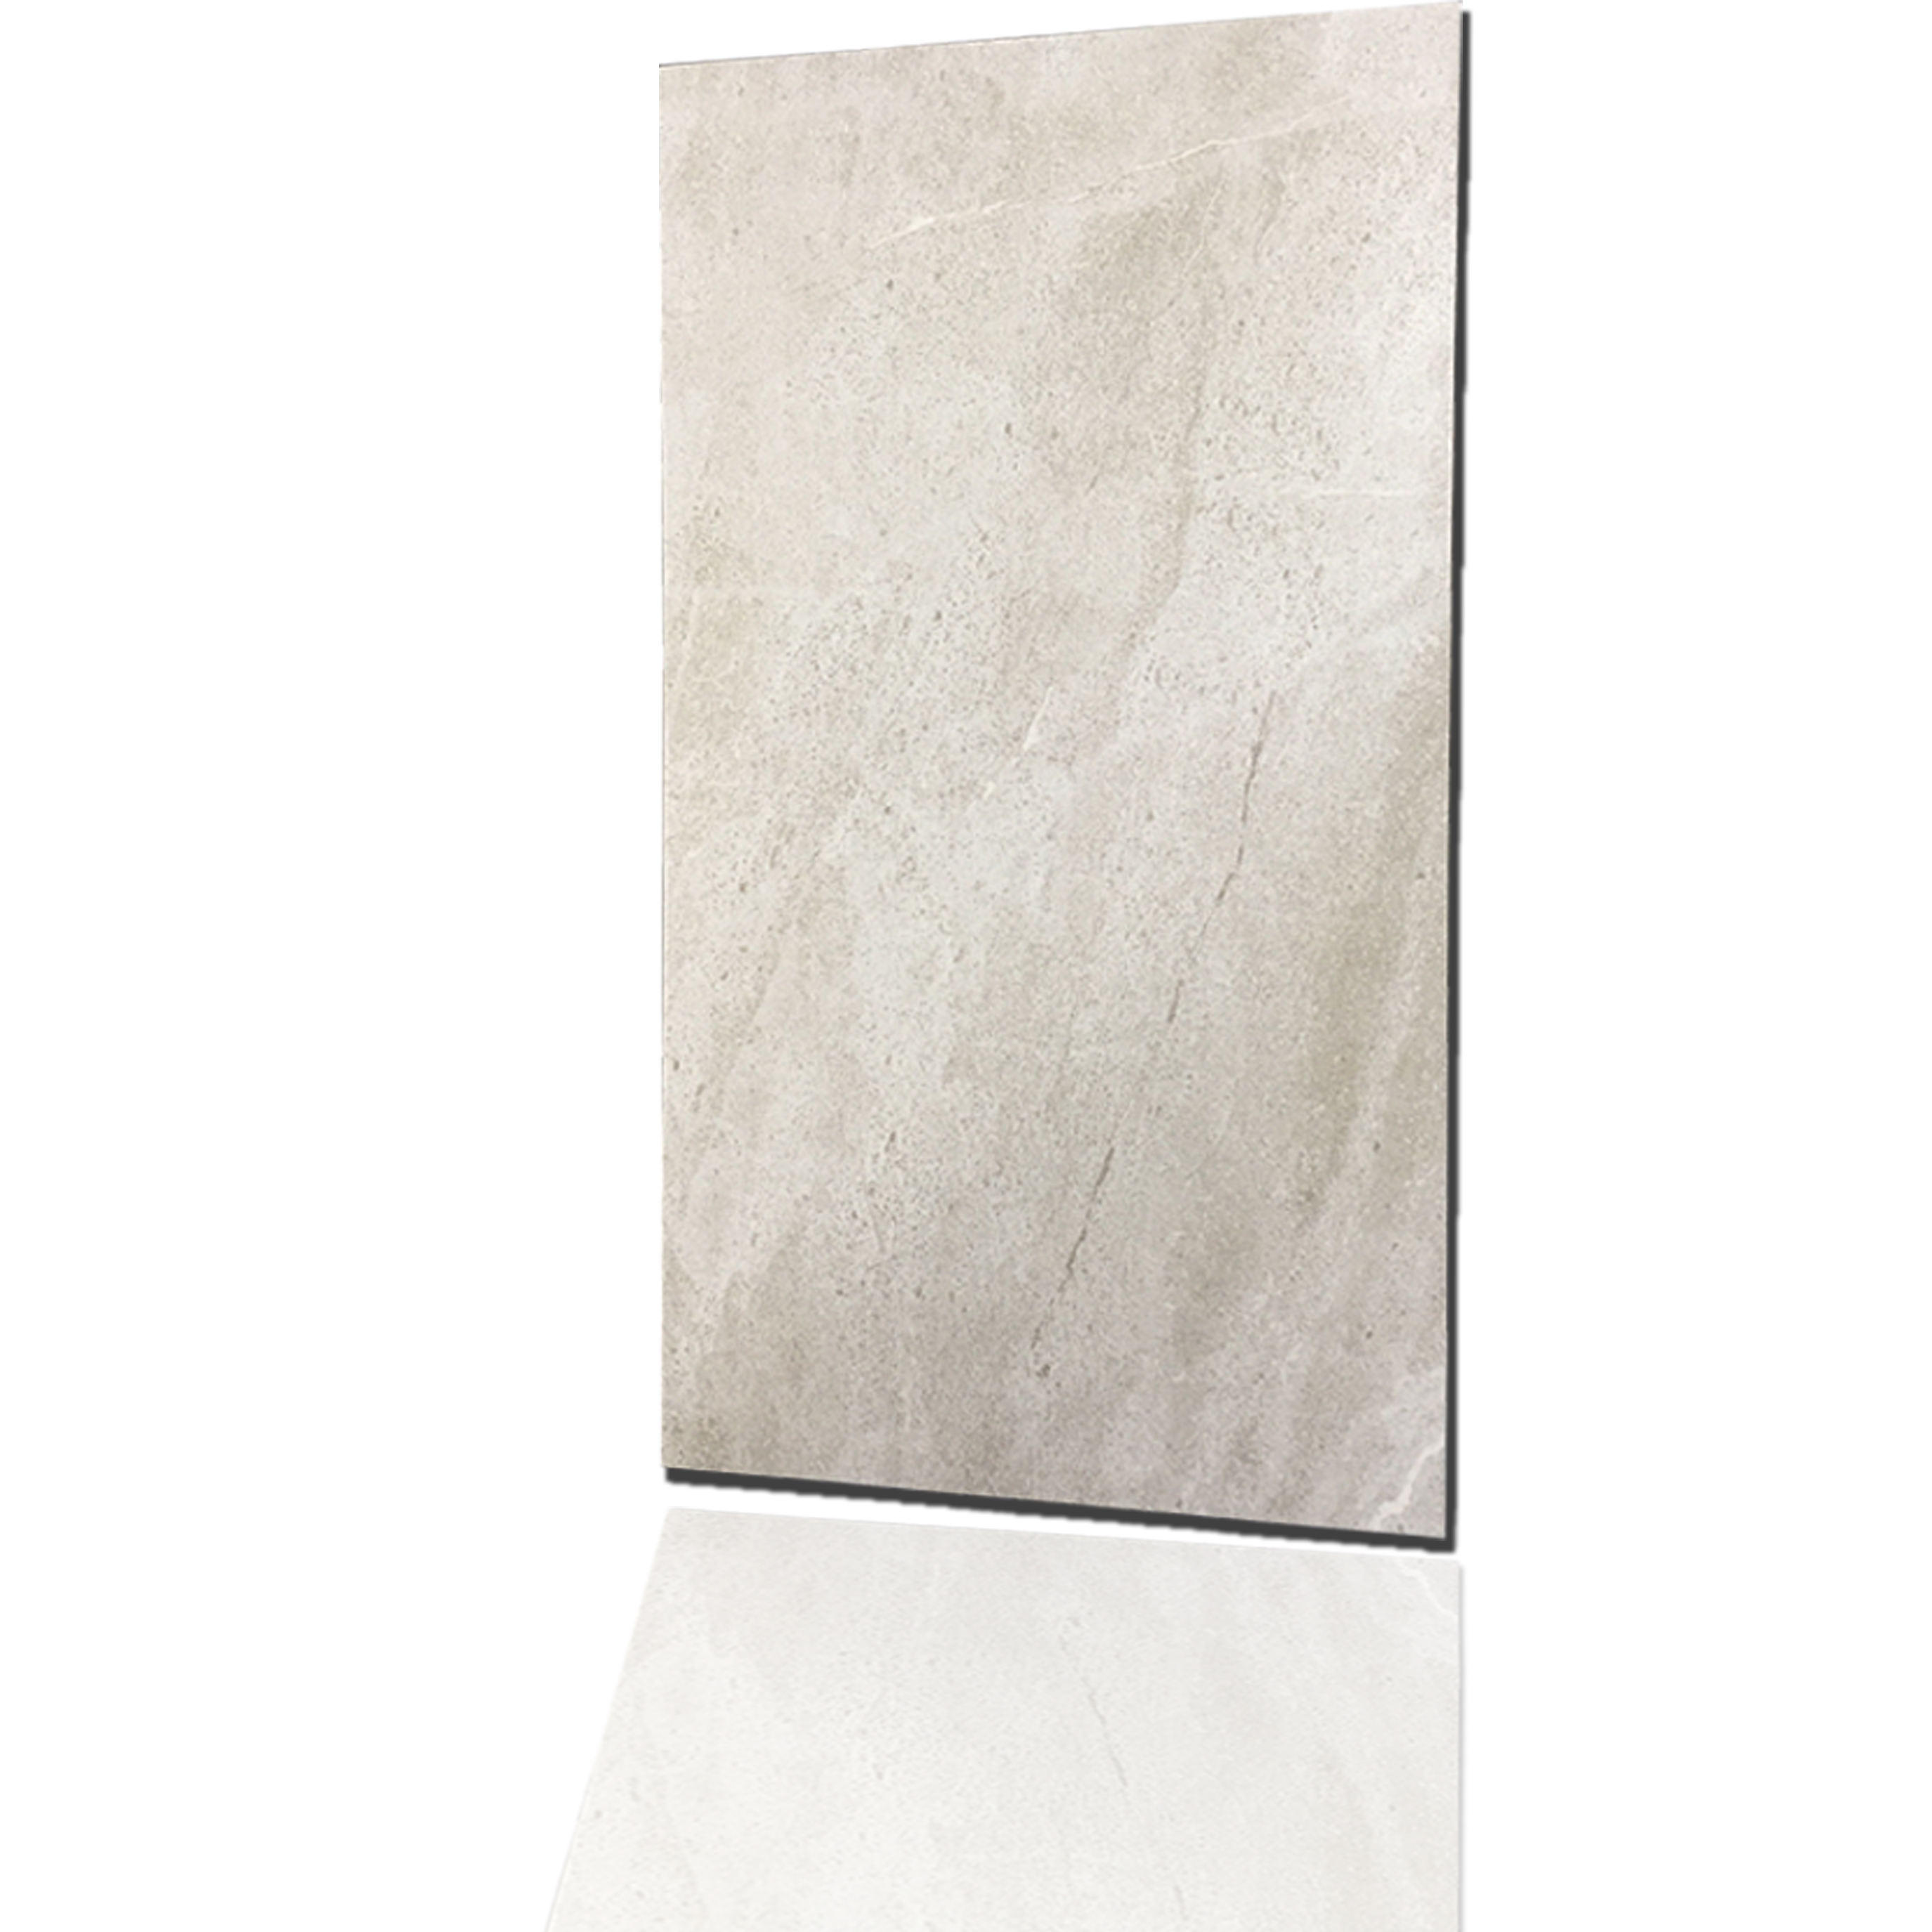 Grey Porcelain Bathroom Wall Tiles Stoneware Tiles 300x600mm